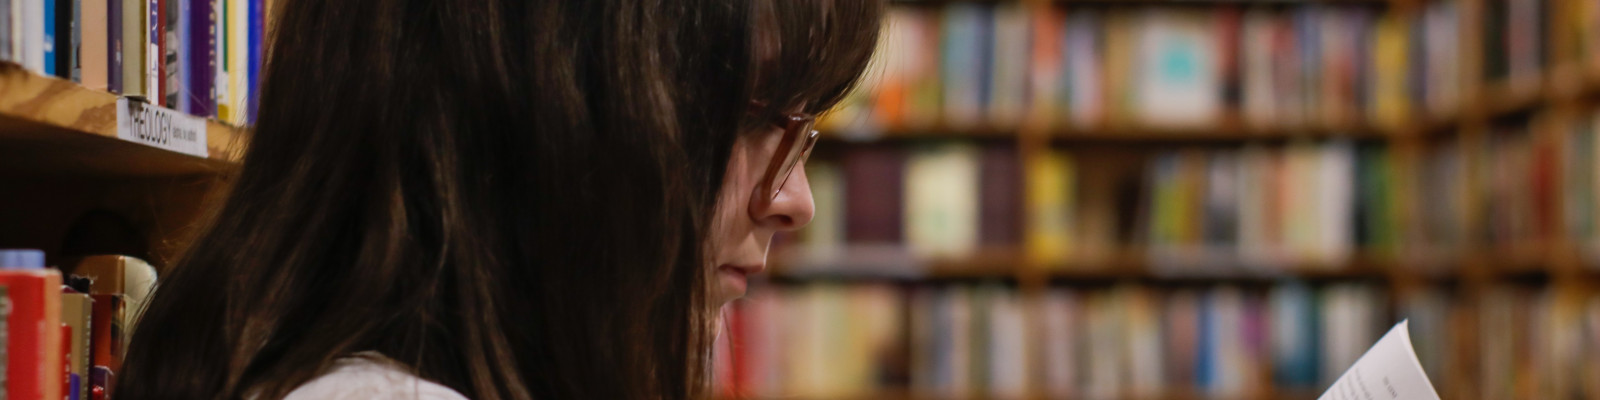 Young woman reading book in library stacks, image by Eliott Reyna